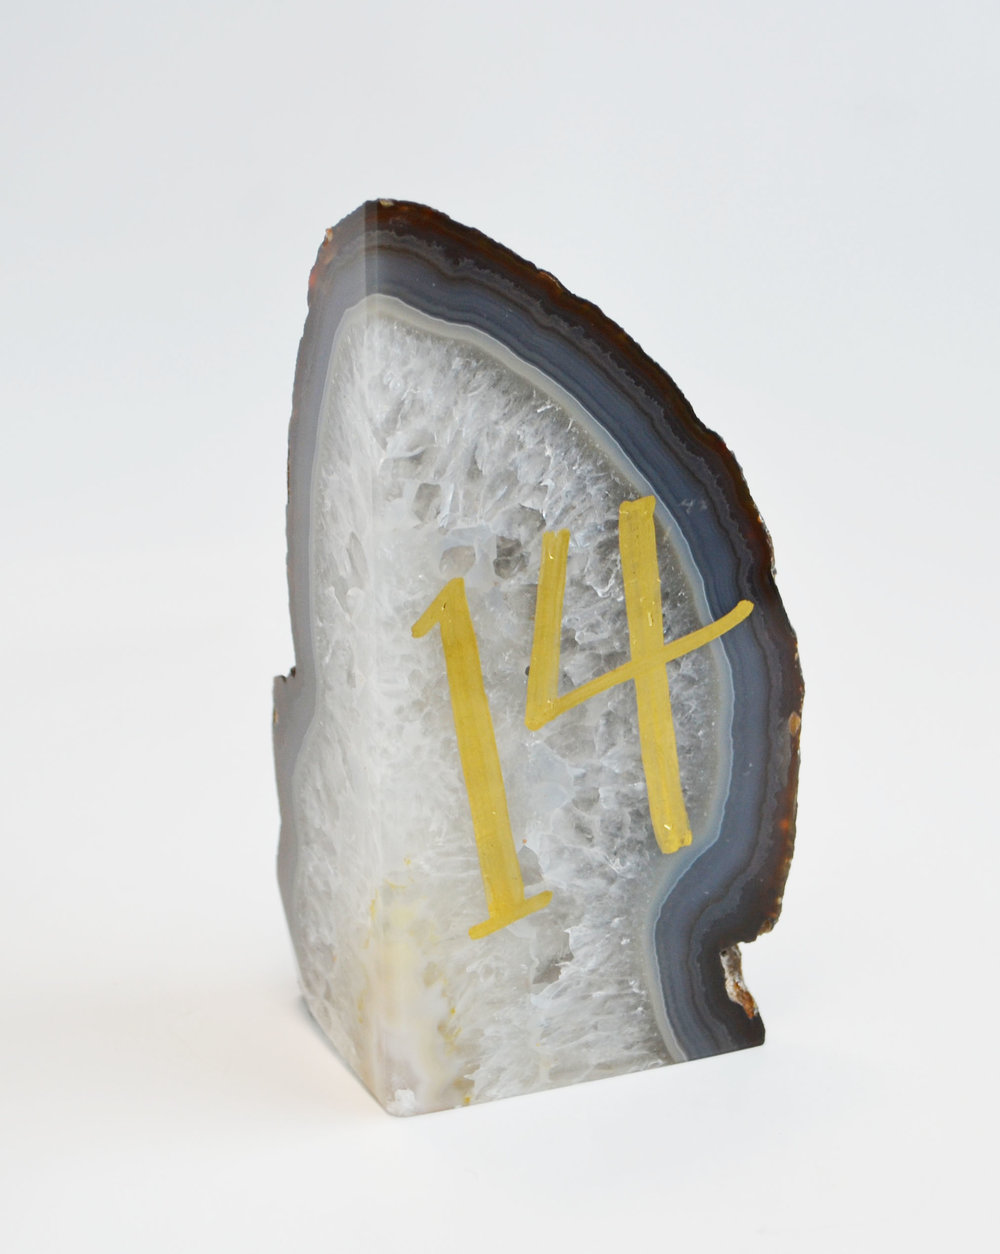 agate table number   Quantity: 14  Price: $10.00